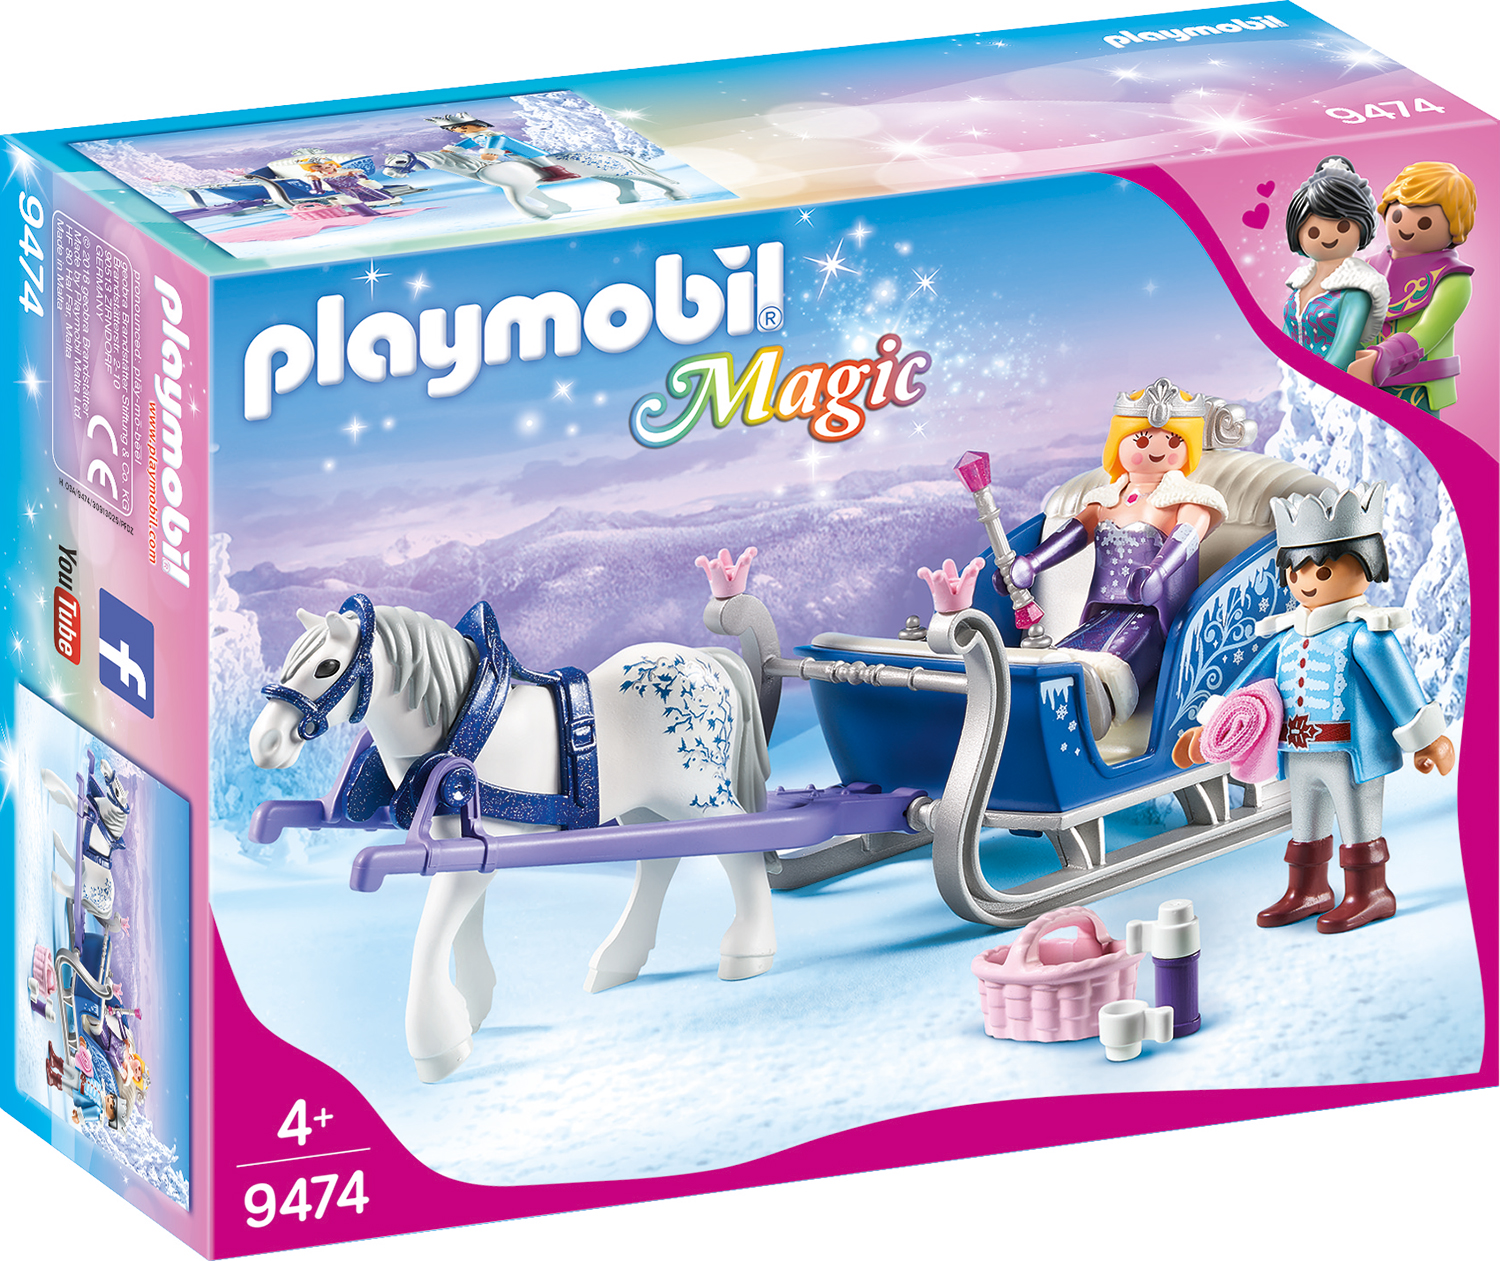 Sanie cu cuplu regal playmobil magic